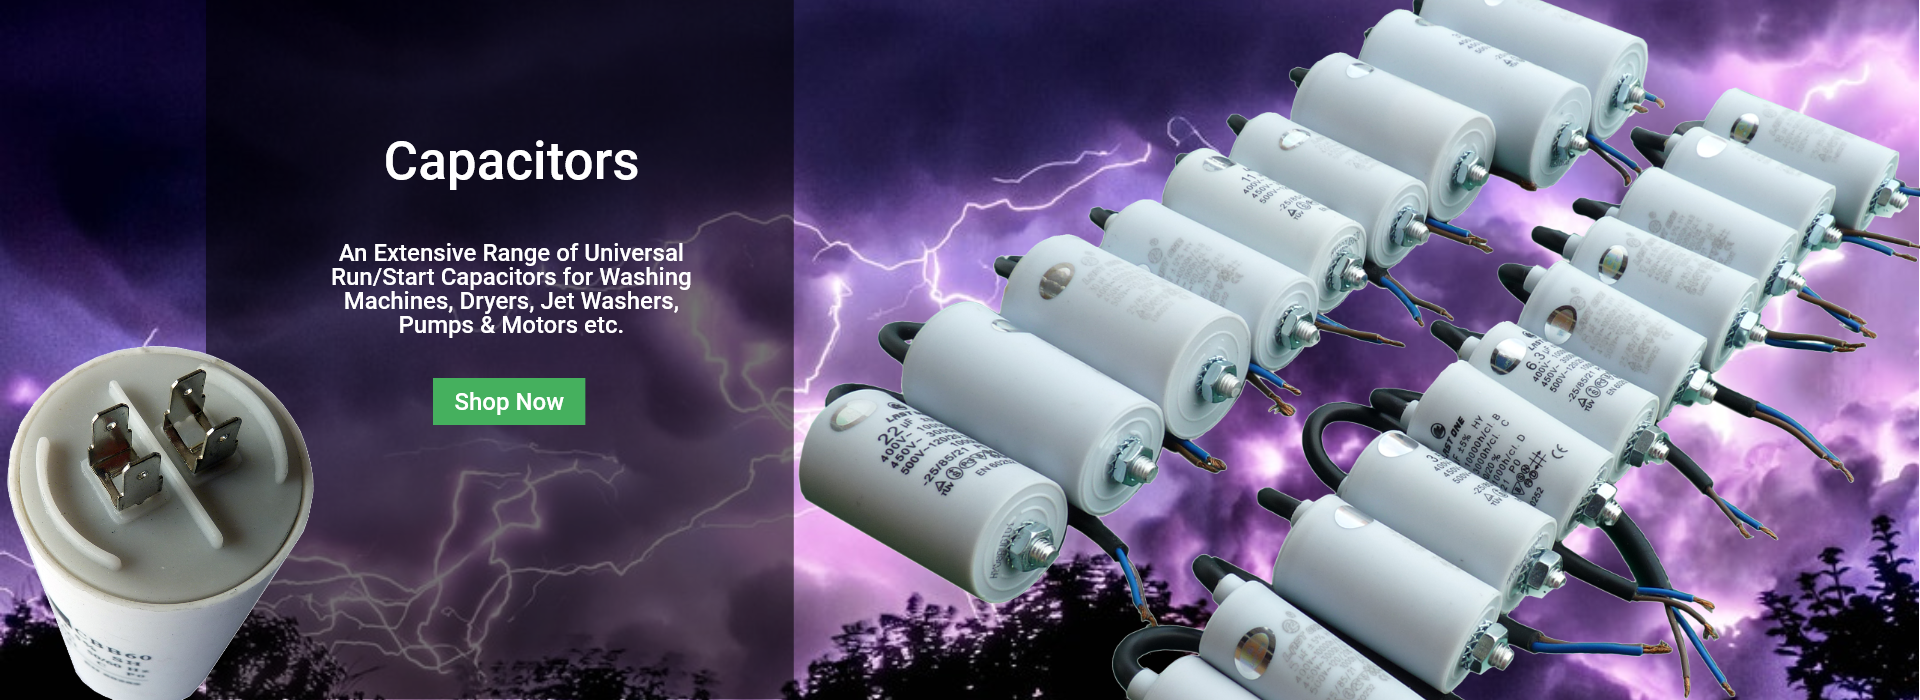 Extensive Range of Universal Run/Start Capacitors for Washing Machines, Dryers, pumps, Motors, etc.